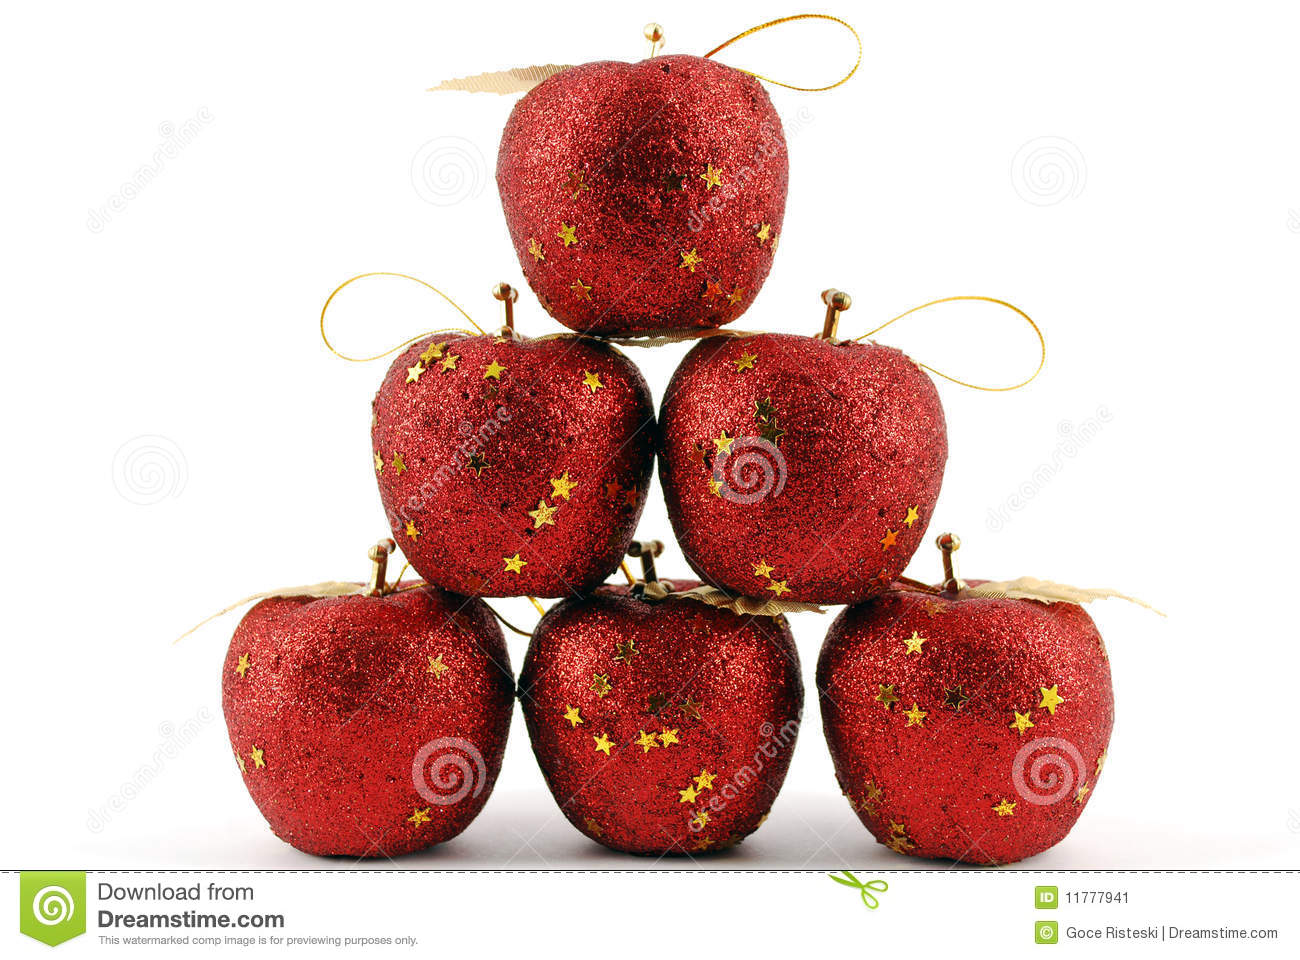 Pomme de rouge de d coration de no l image stock image for Decoration pomme rouge